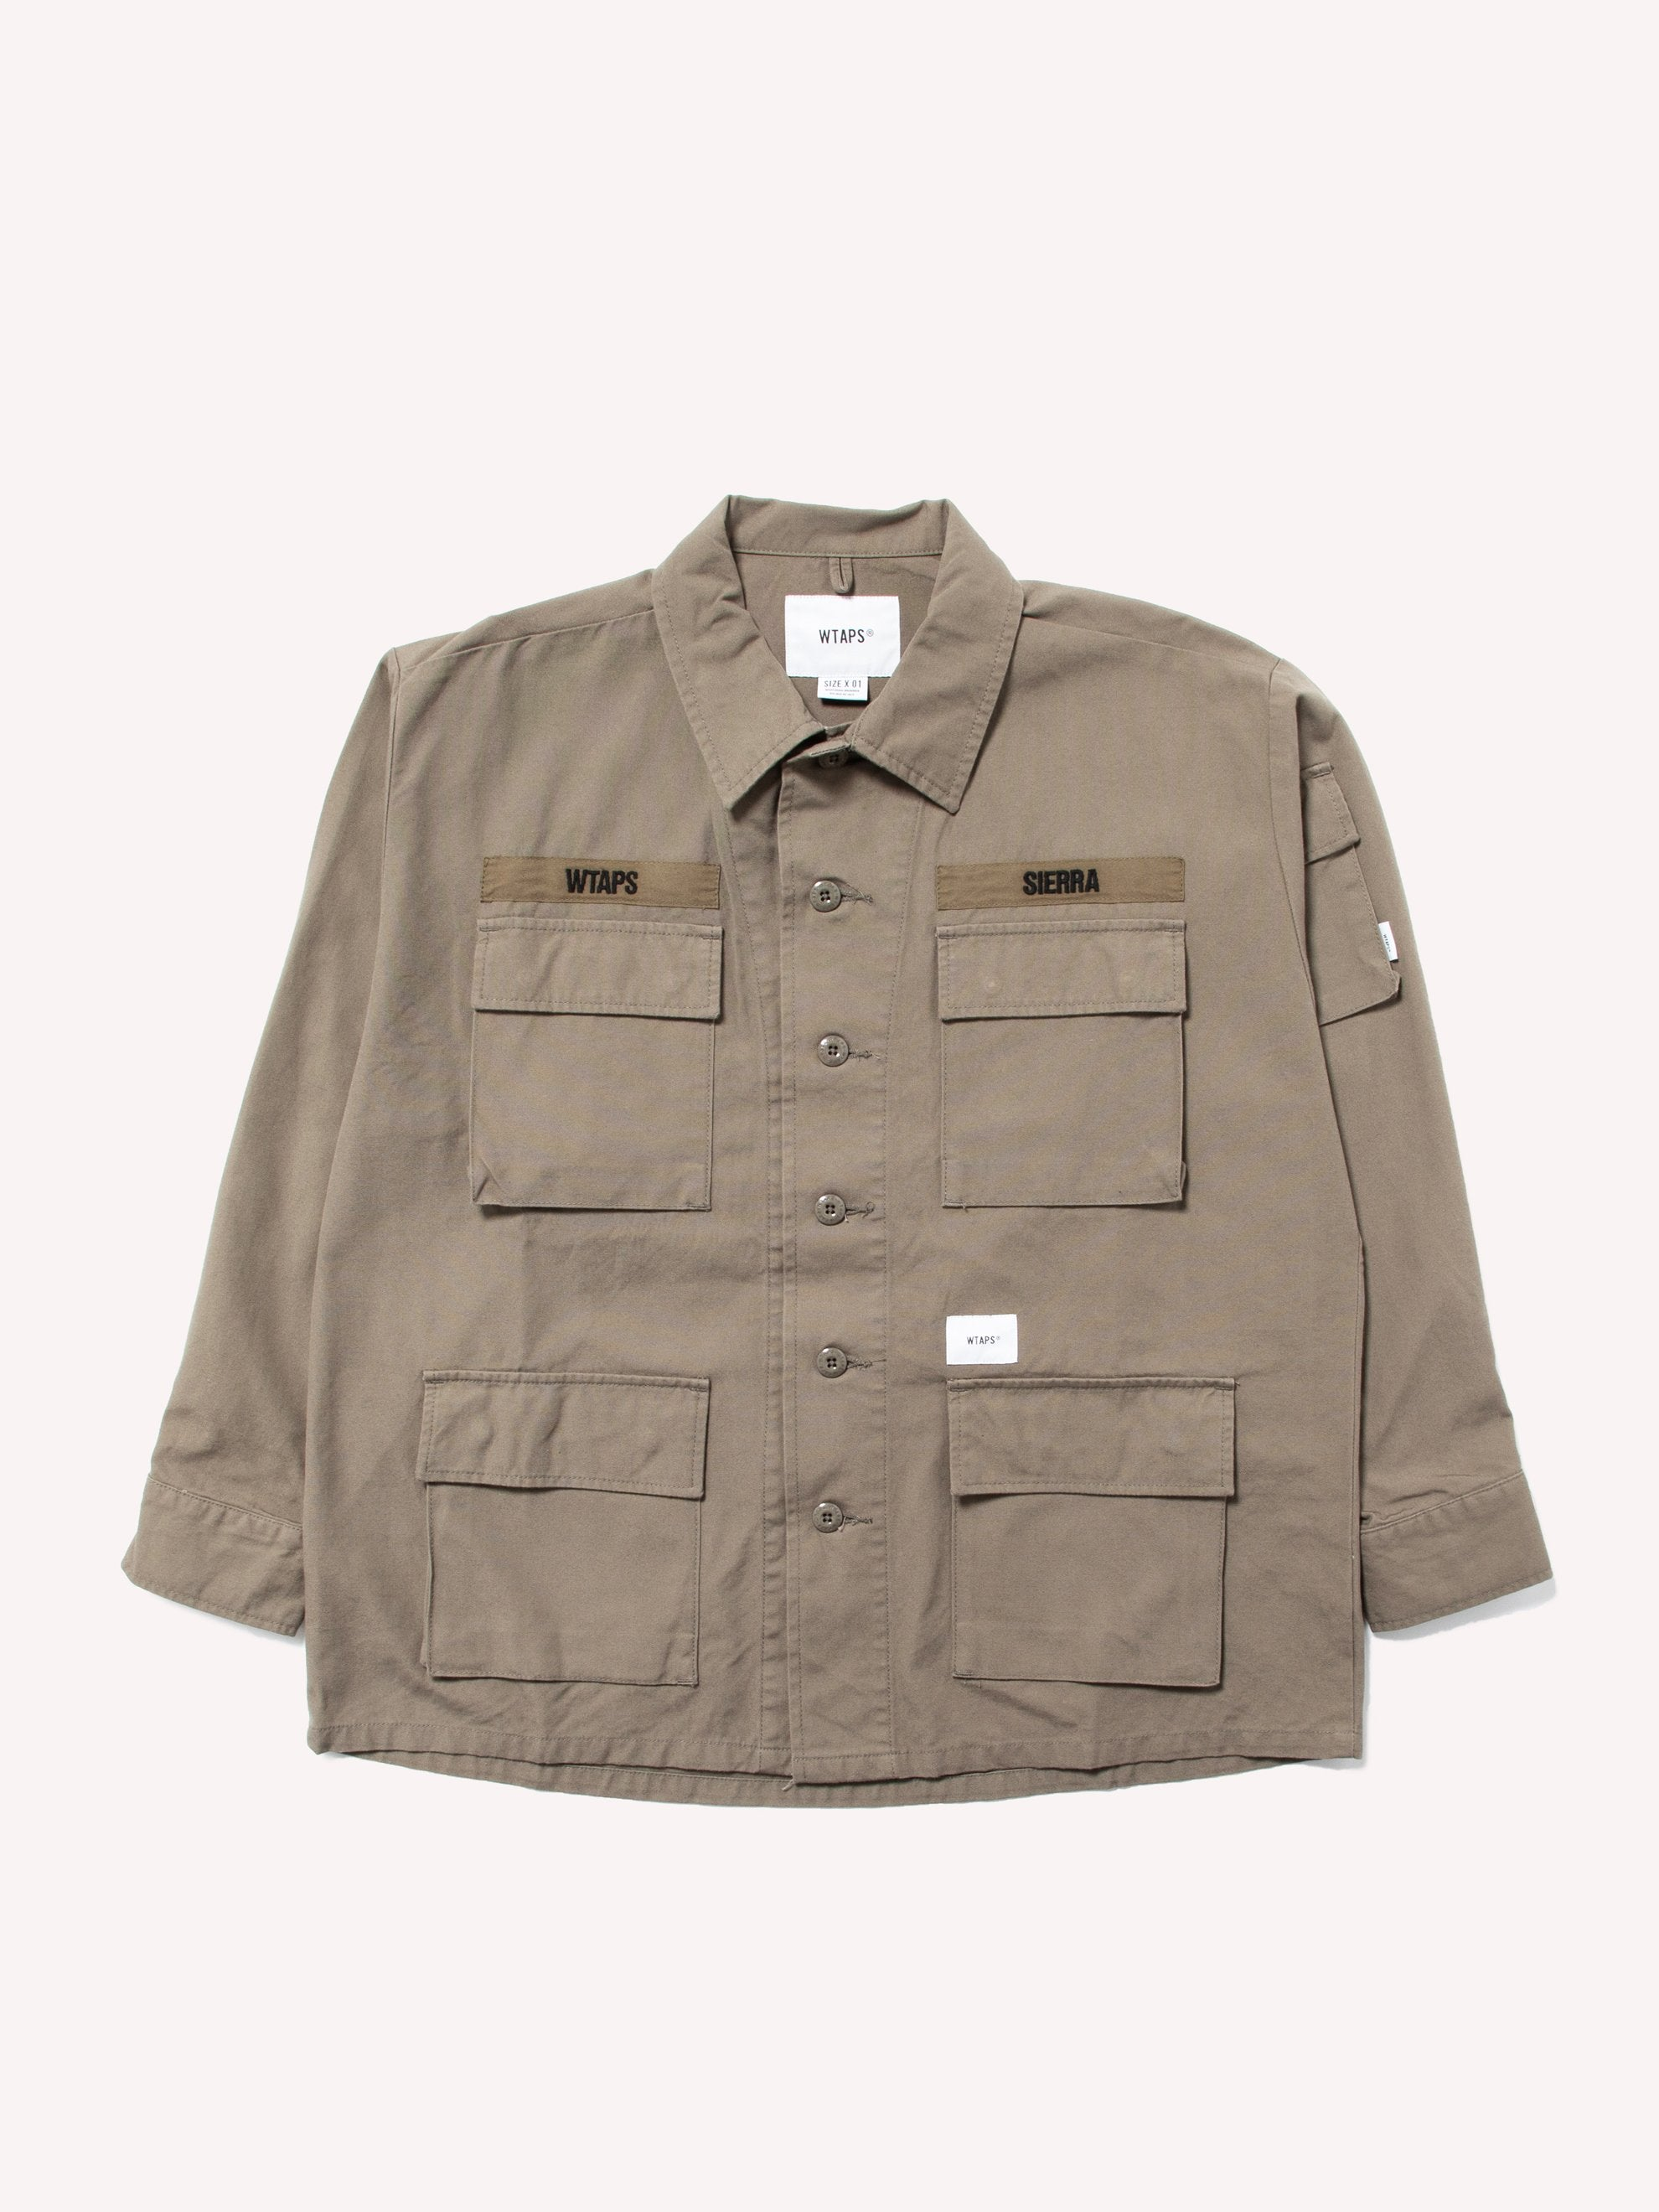 Olive Drab Jungle LS / Shirt Cotton Canvas 1